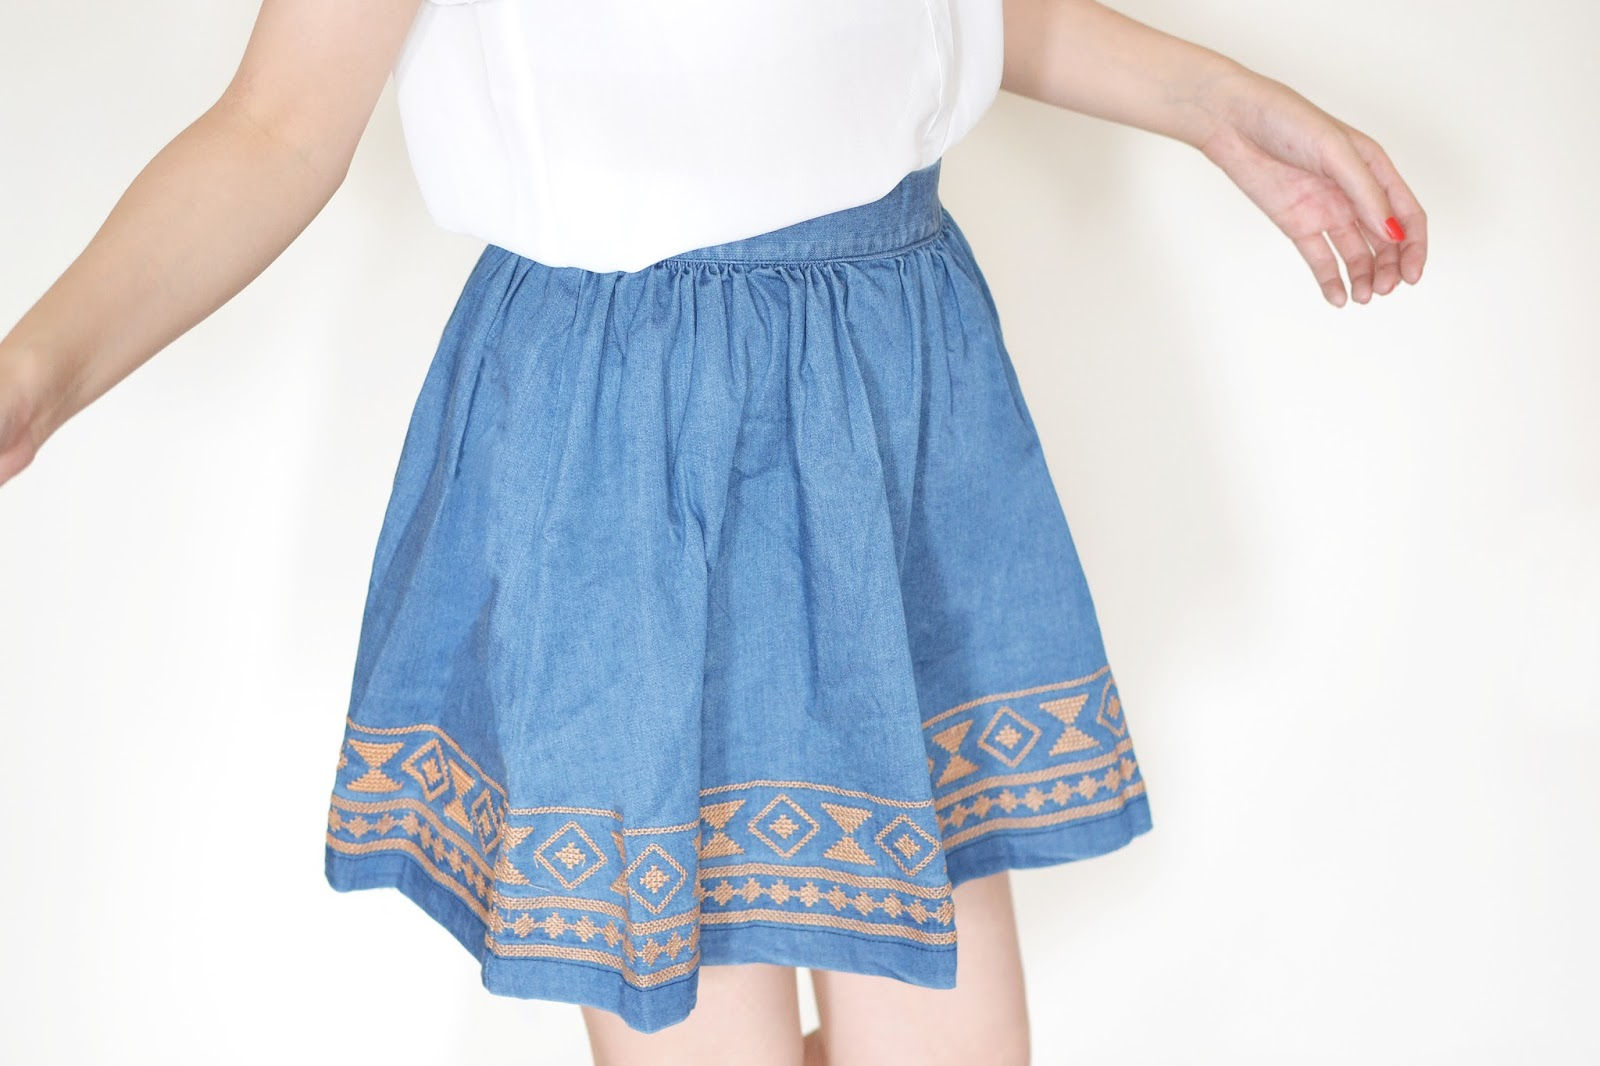 how to style a denim skirt, denim skater skirt